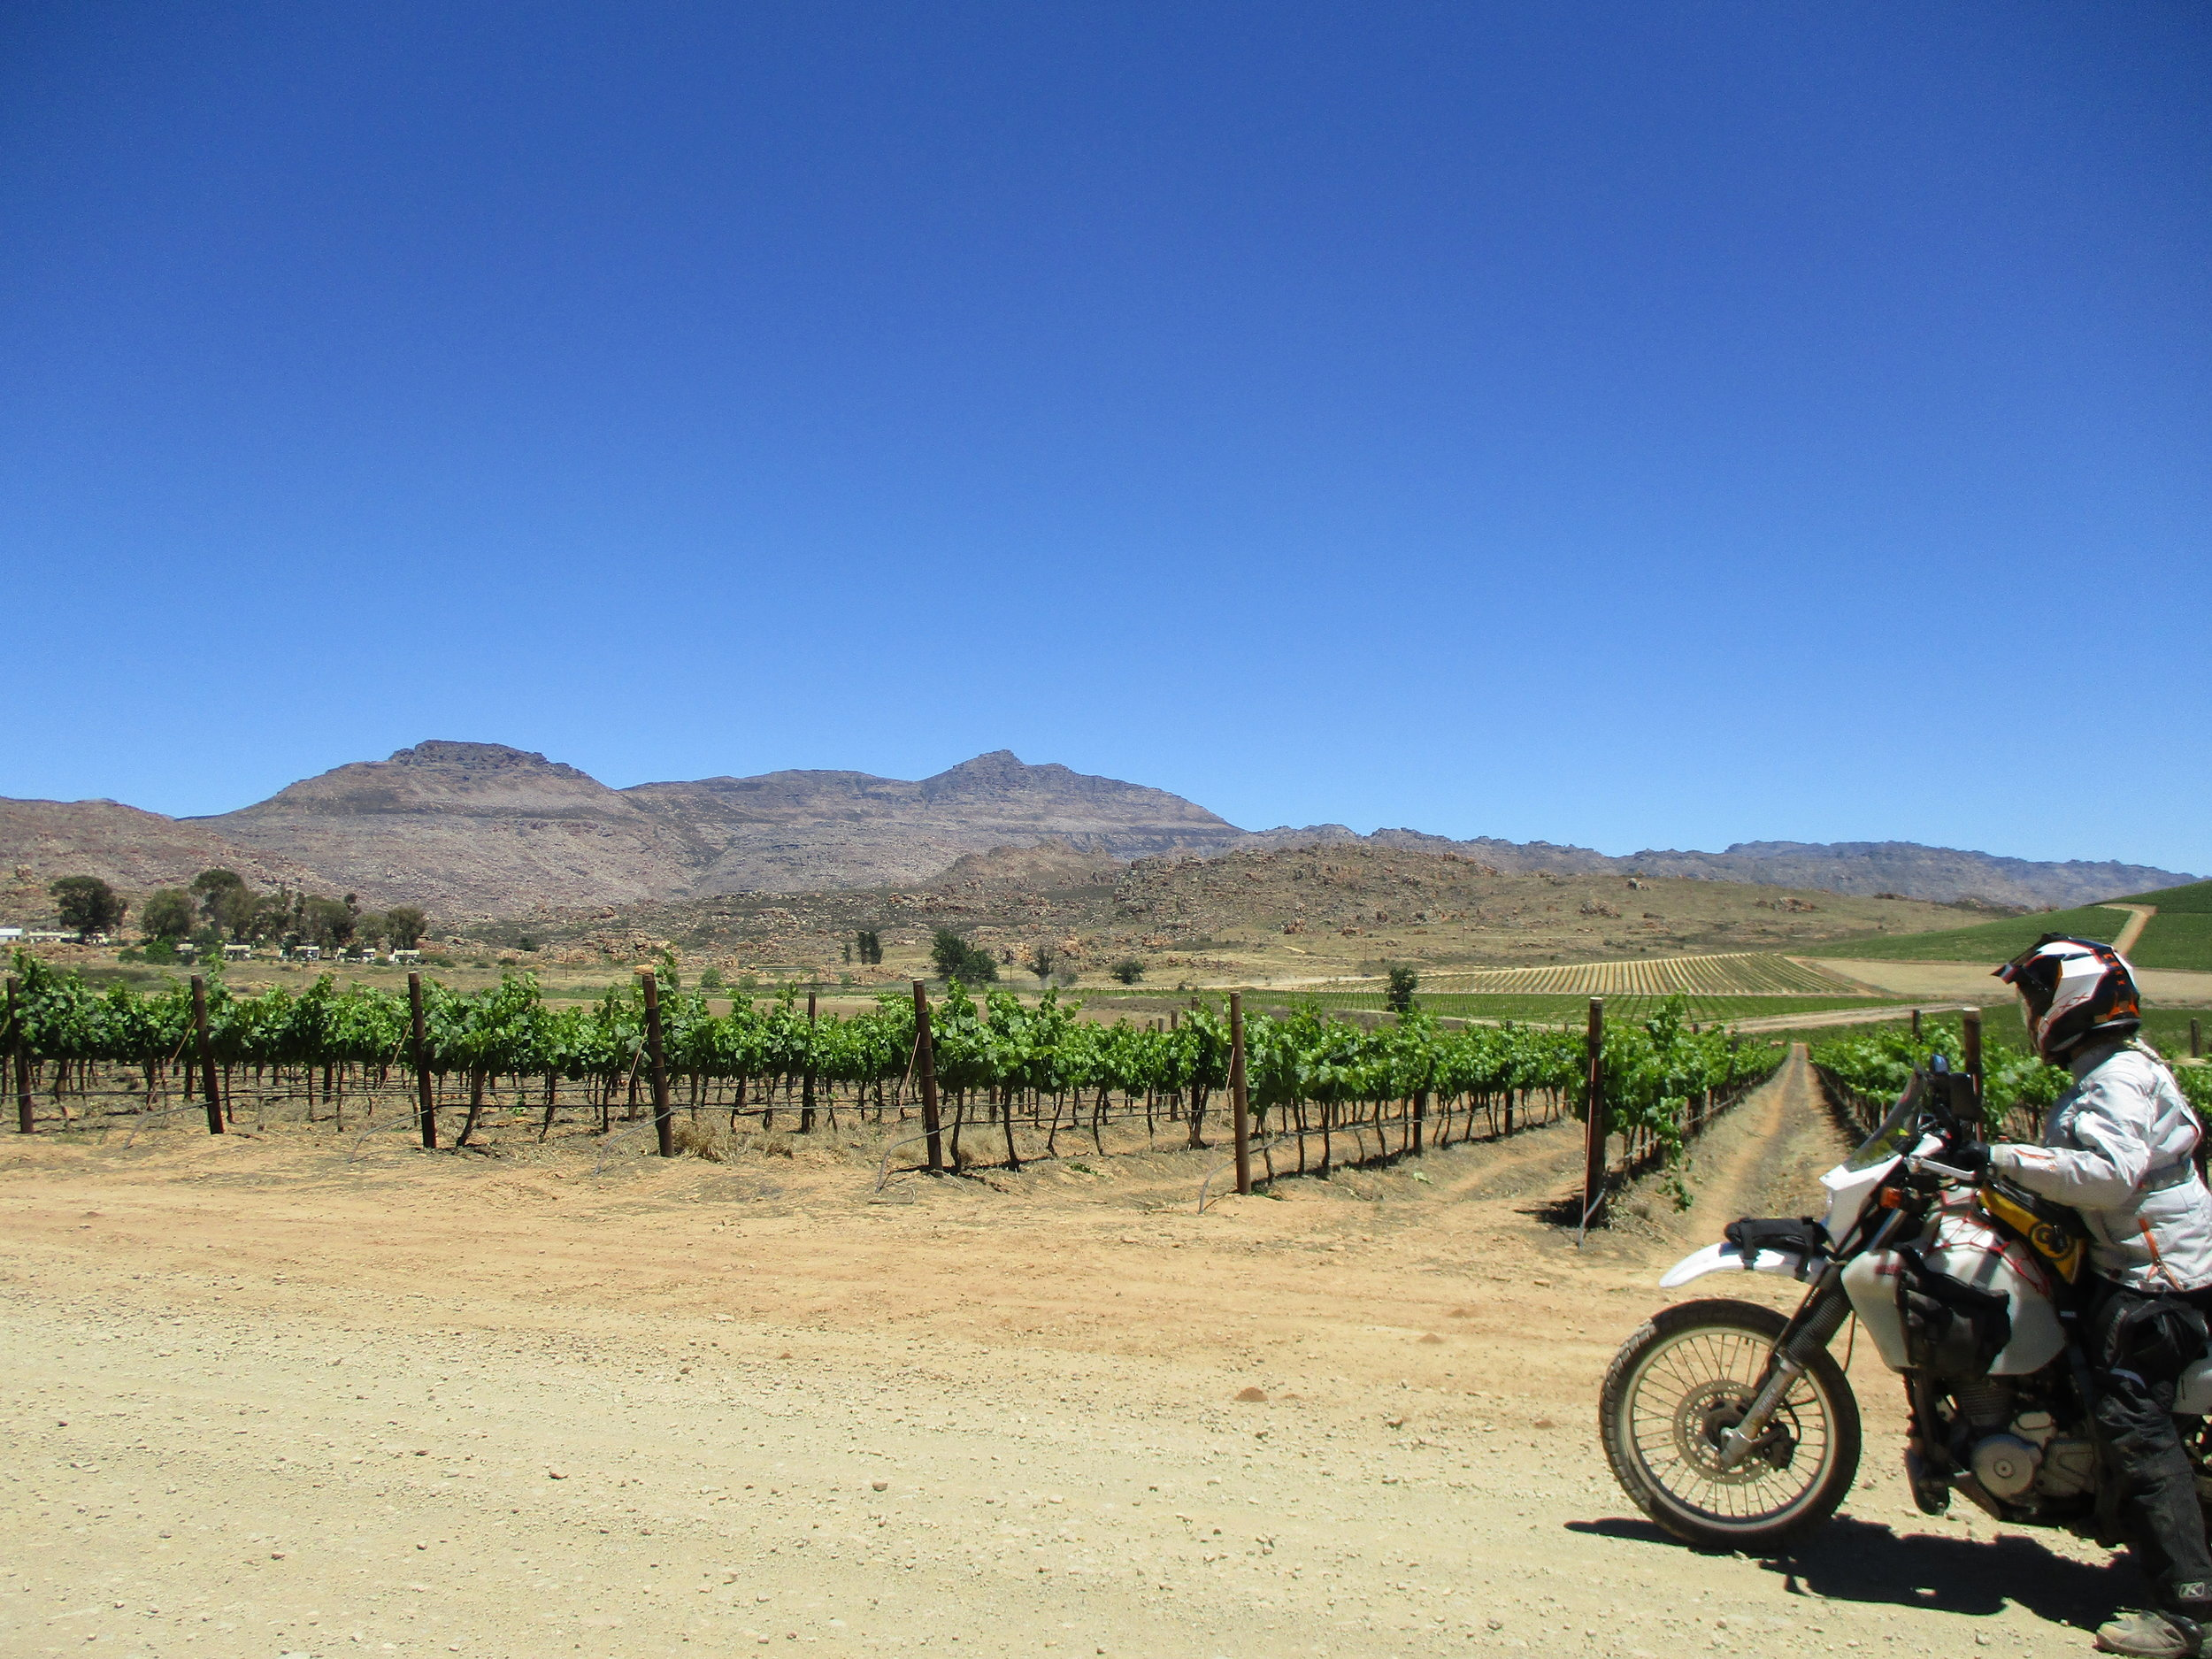 ...and came out at a lovely vineyard.